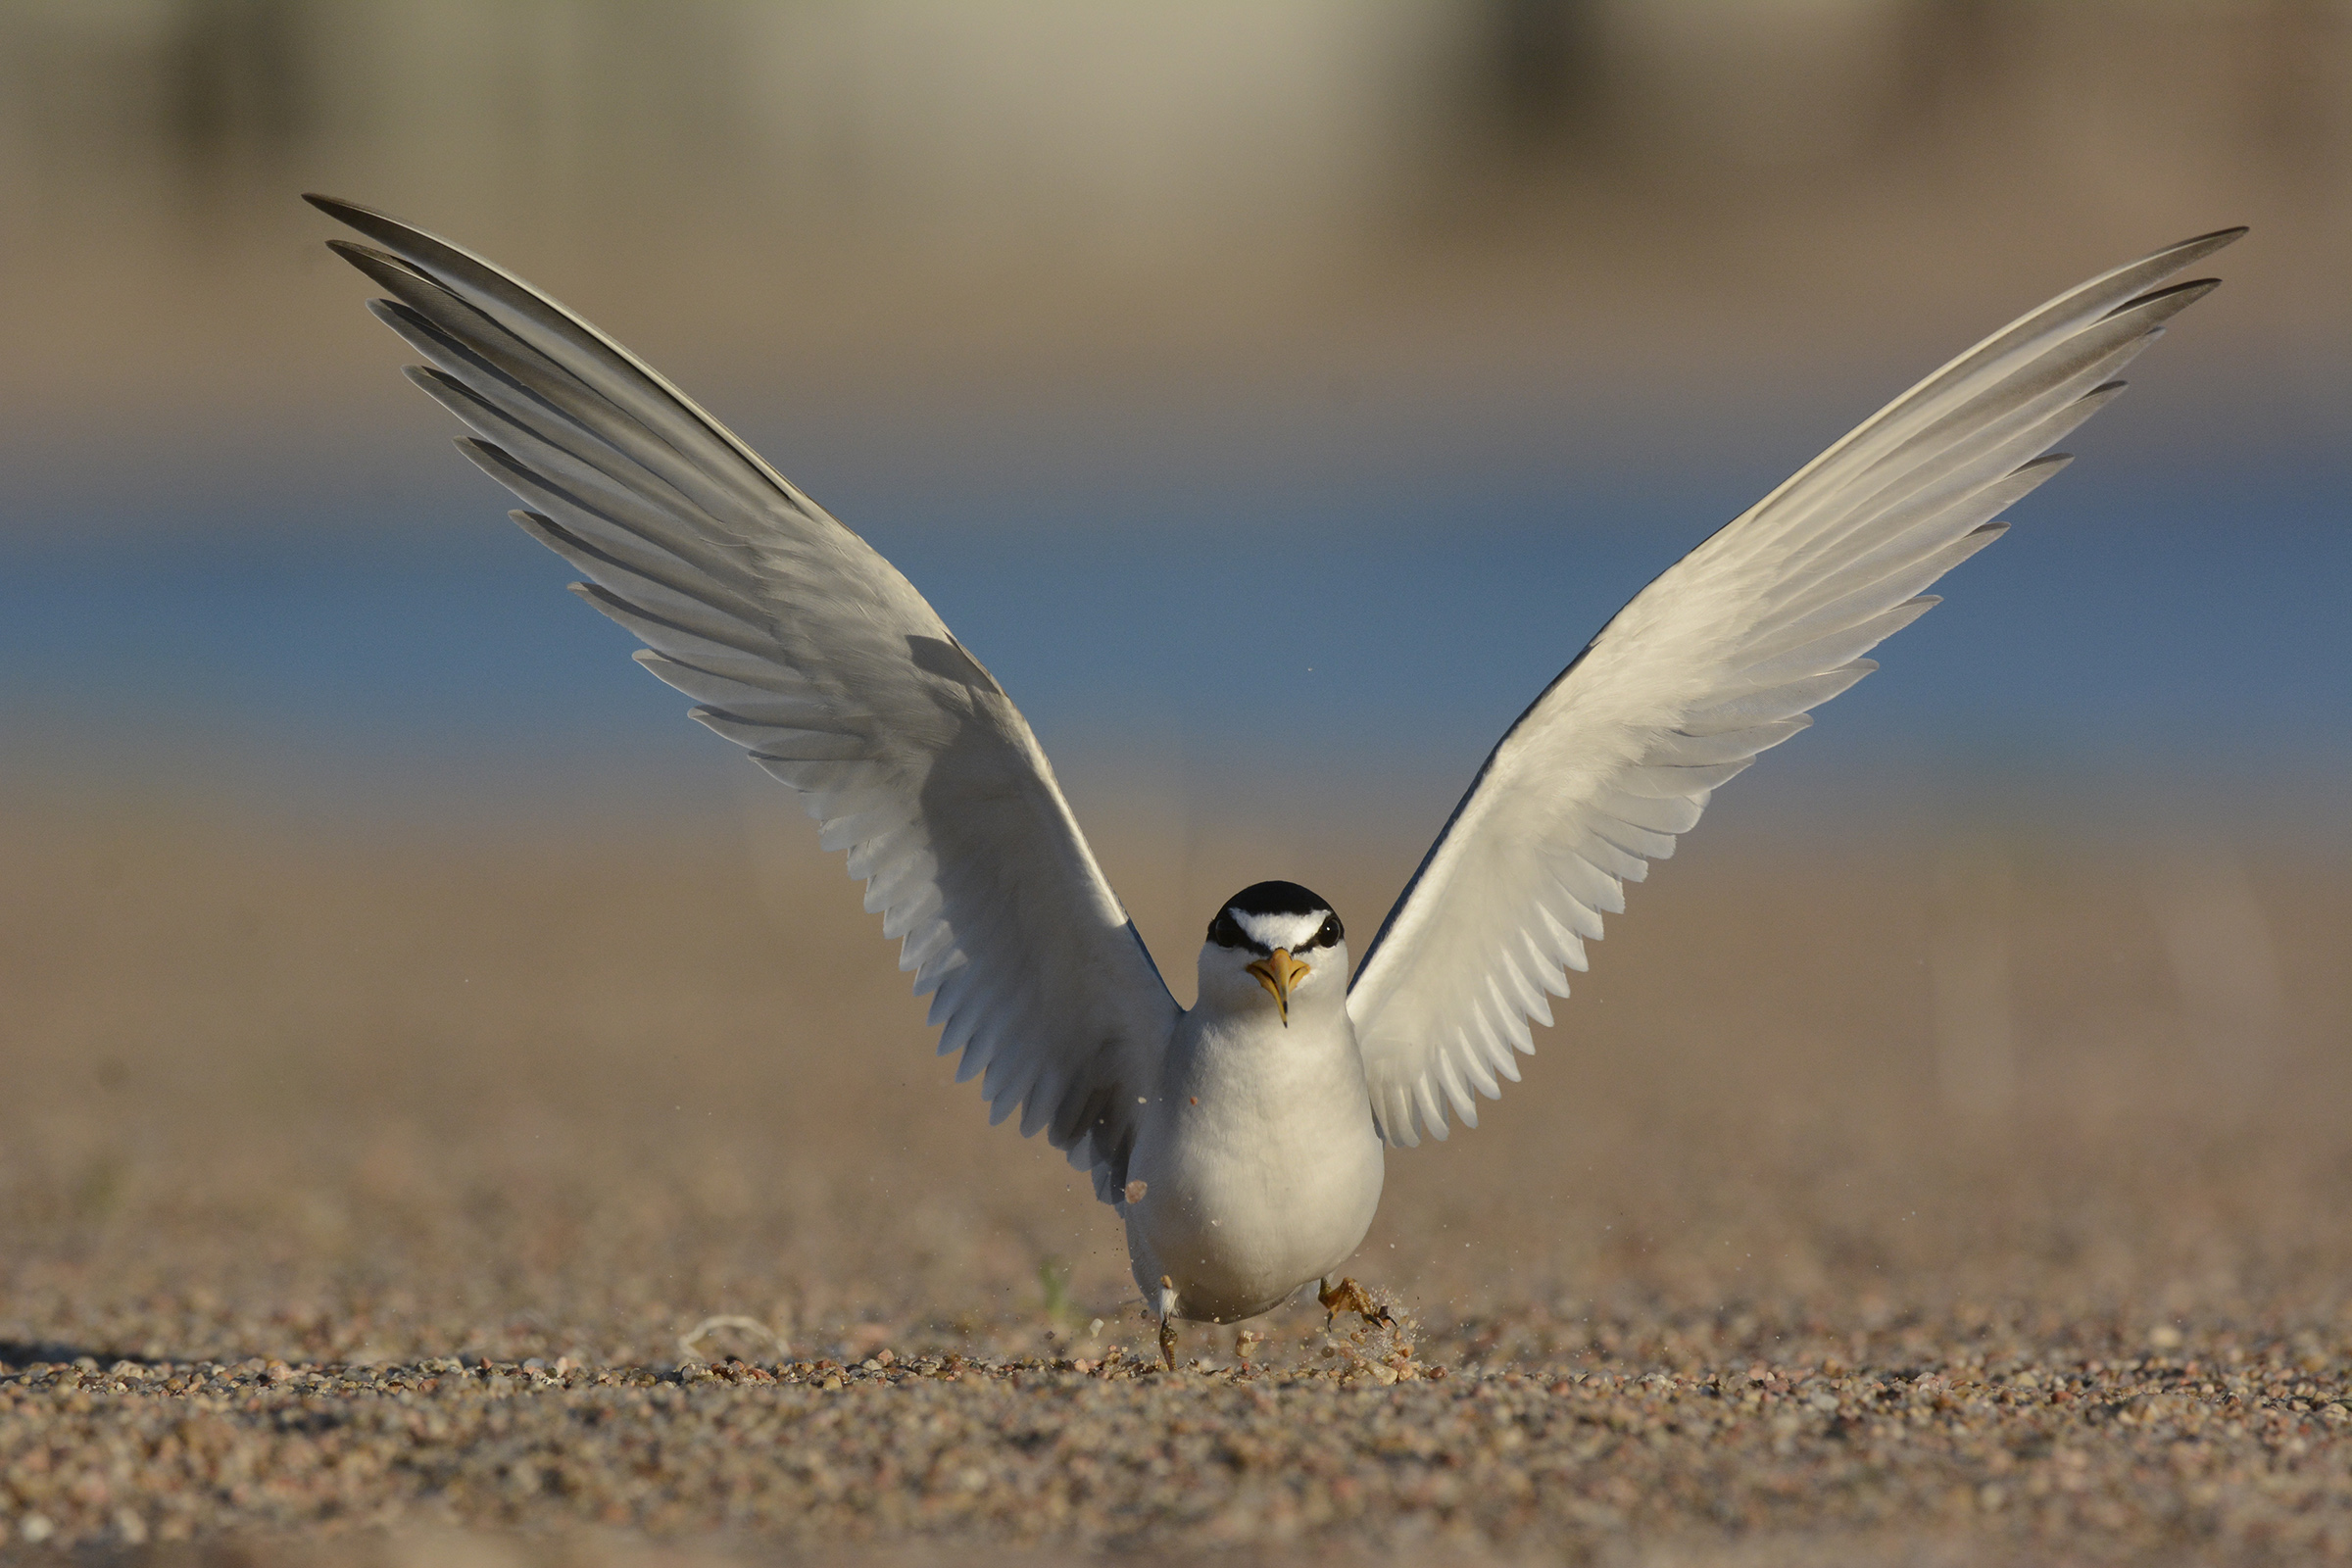 Adult tern lands on the sand near its nest.